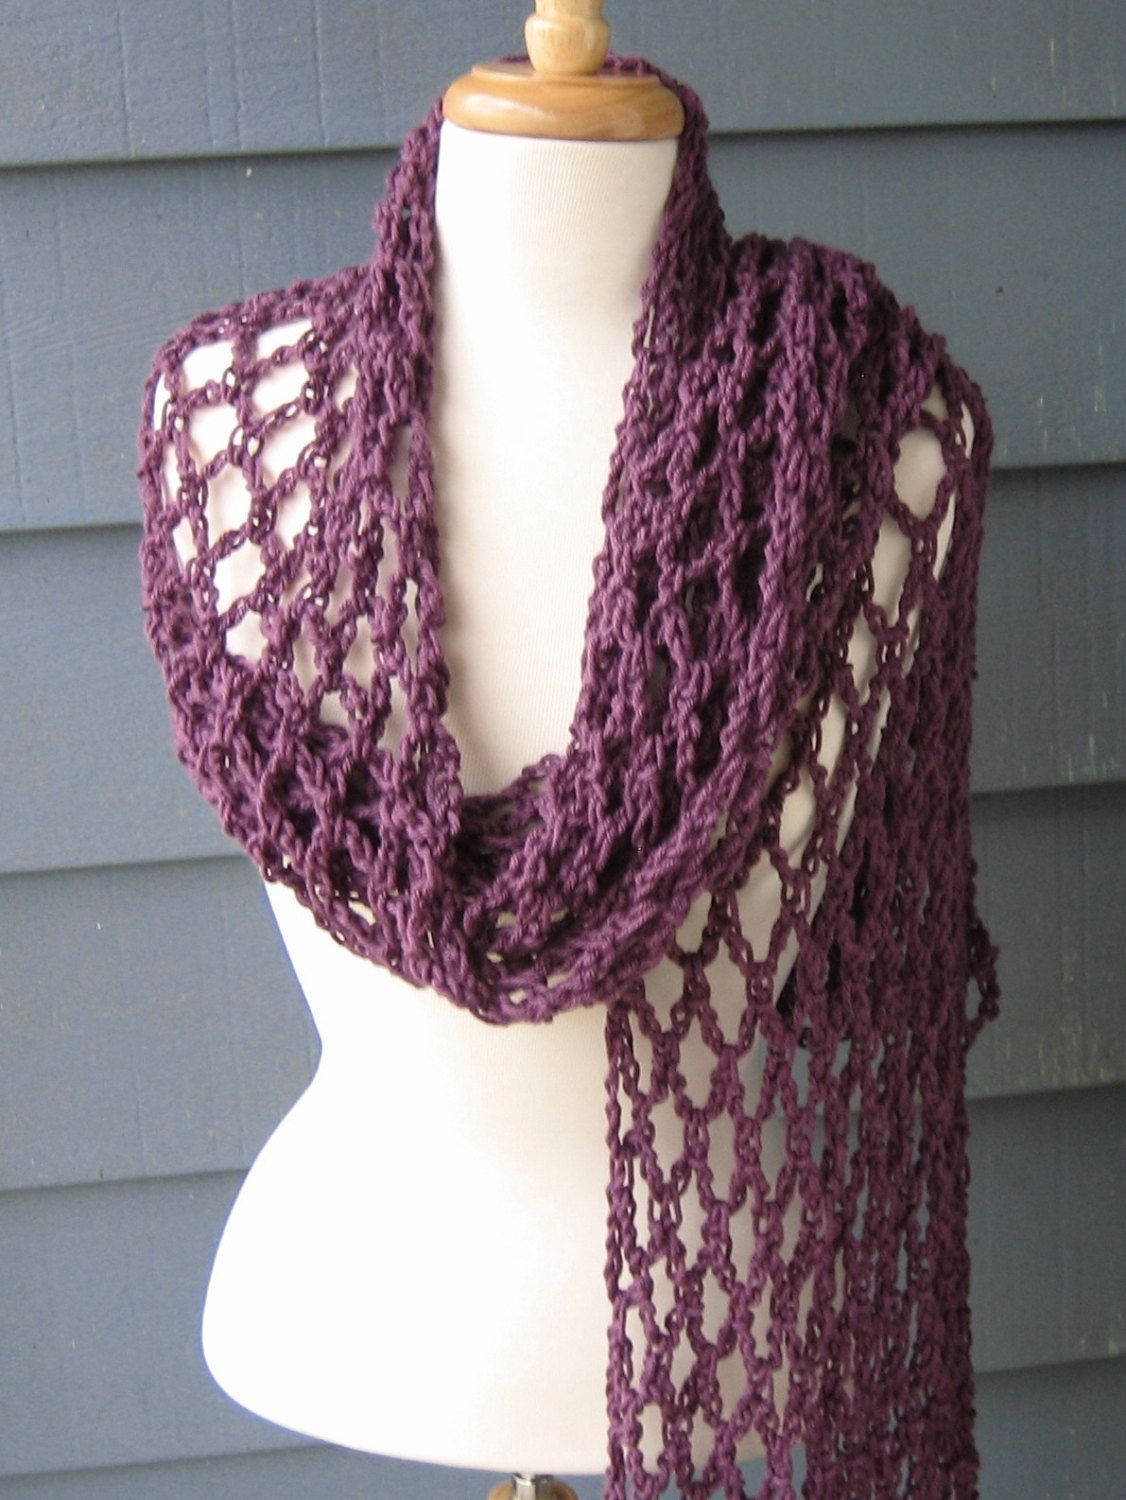 Make+This+Yourself++Crochet+PATTERN++Instant+PDF+by+PurpleStarDust,+$4.00